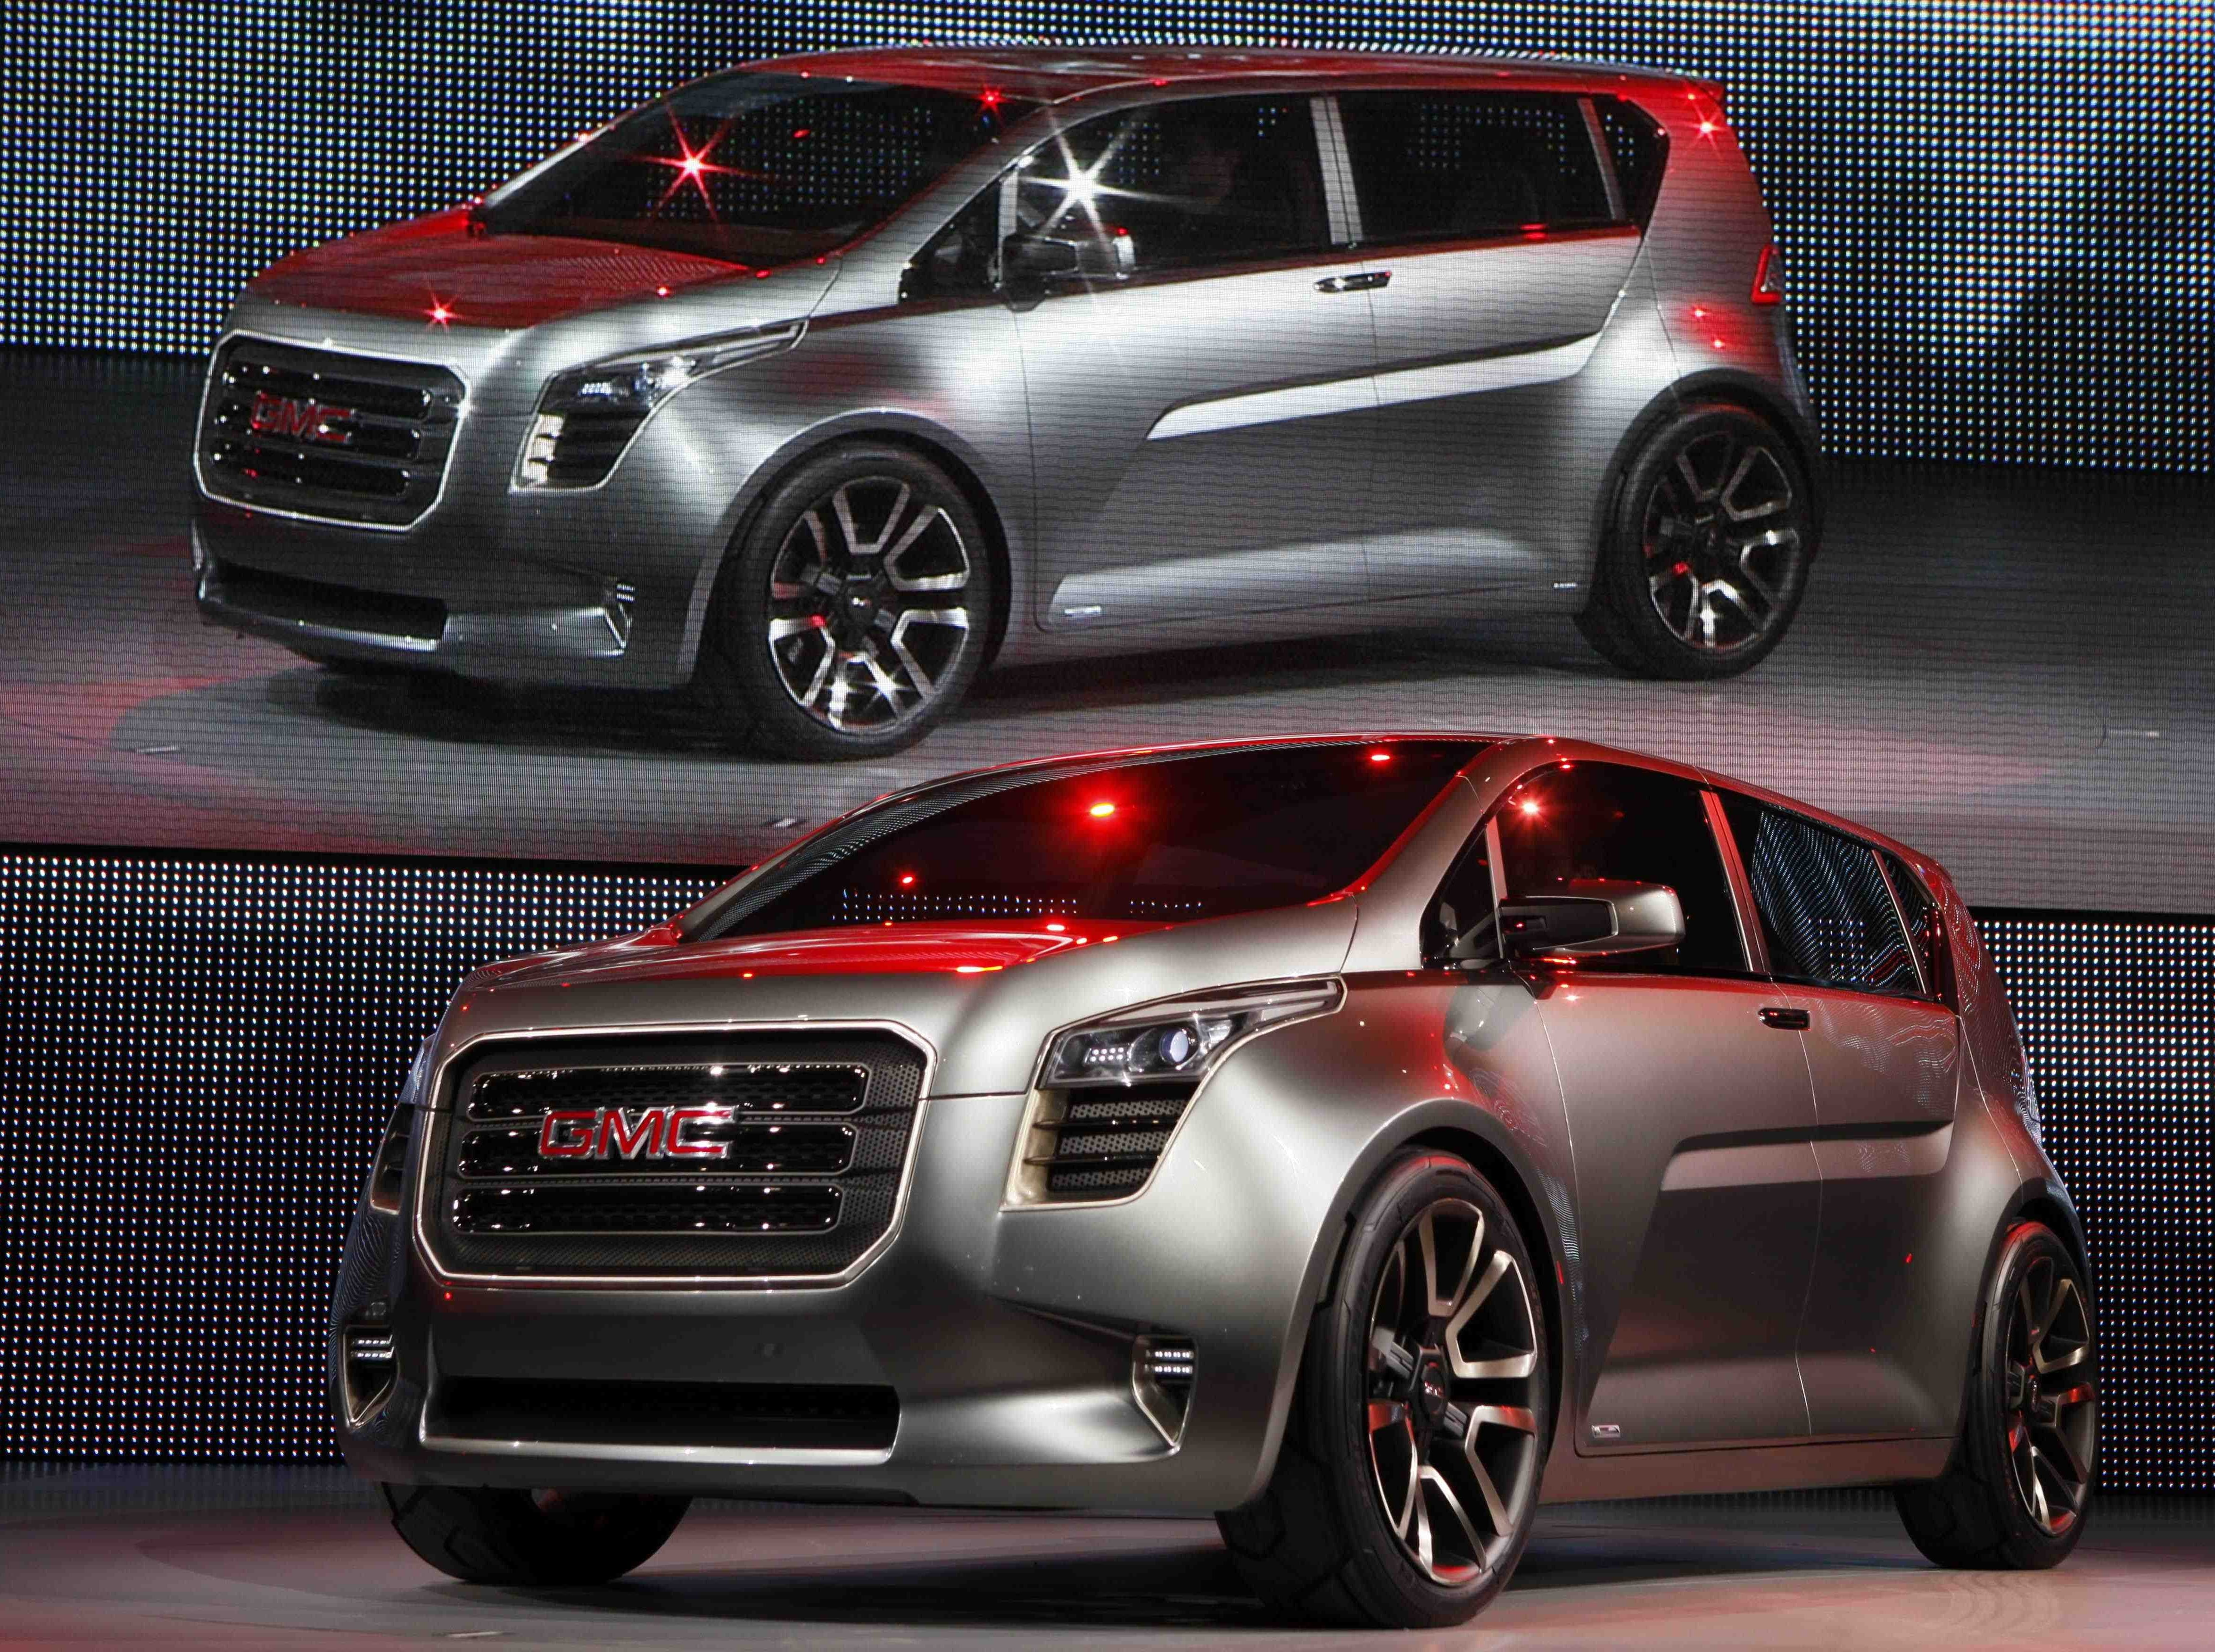 The GMC Granite concept truck is introduced at the North American International Auto Show Monday, Jan. 11, 2010, in Detroit.